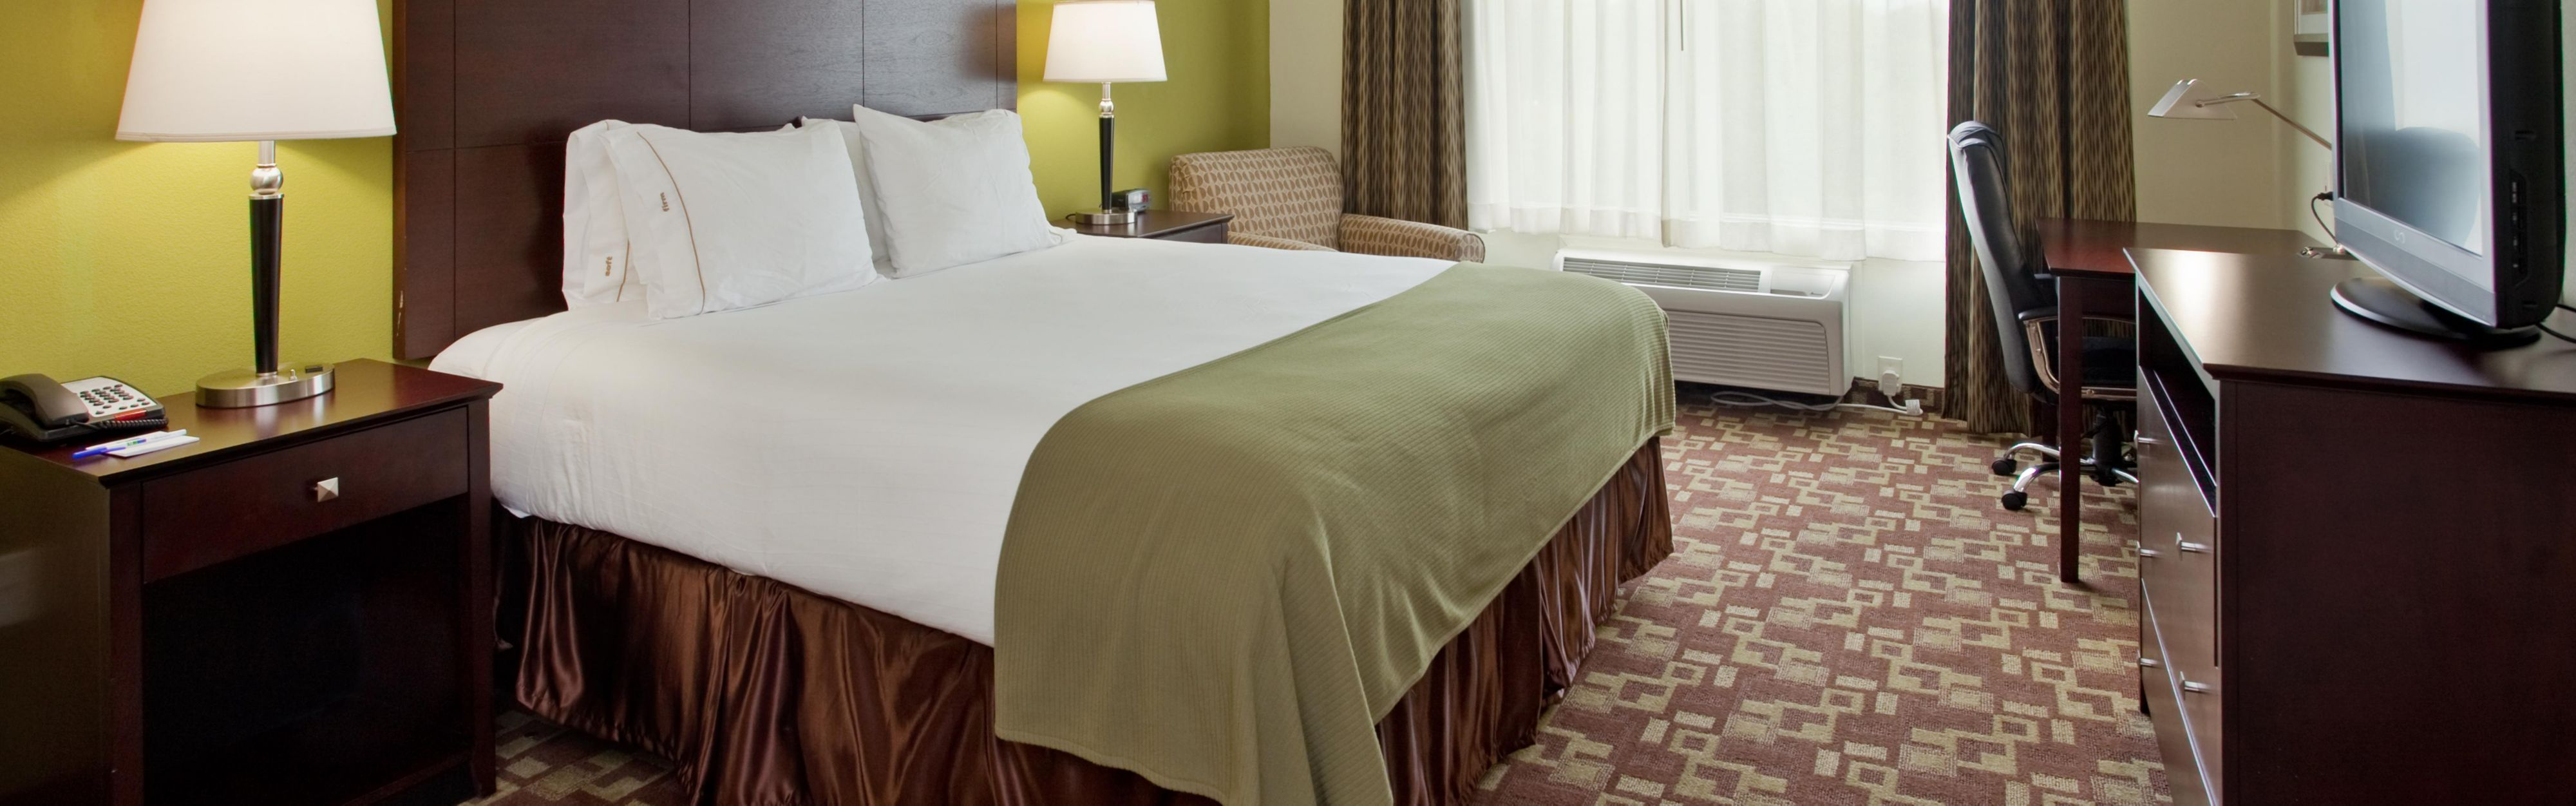 Holiday Inn Express & Suites Kansas City Sport Complex Area image 1